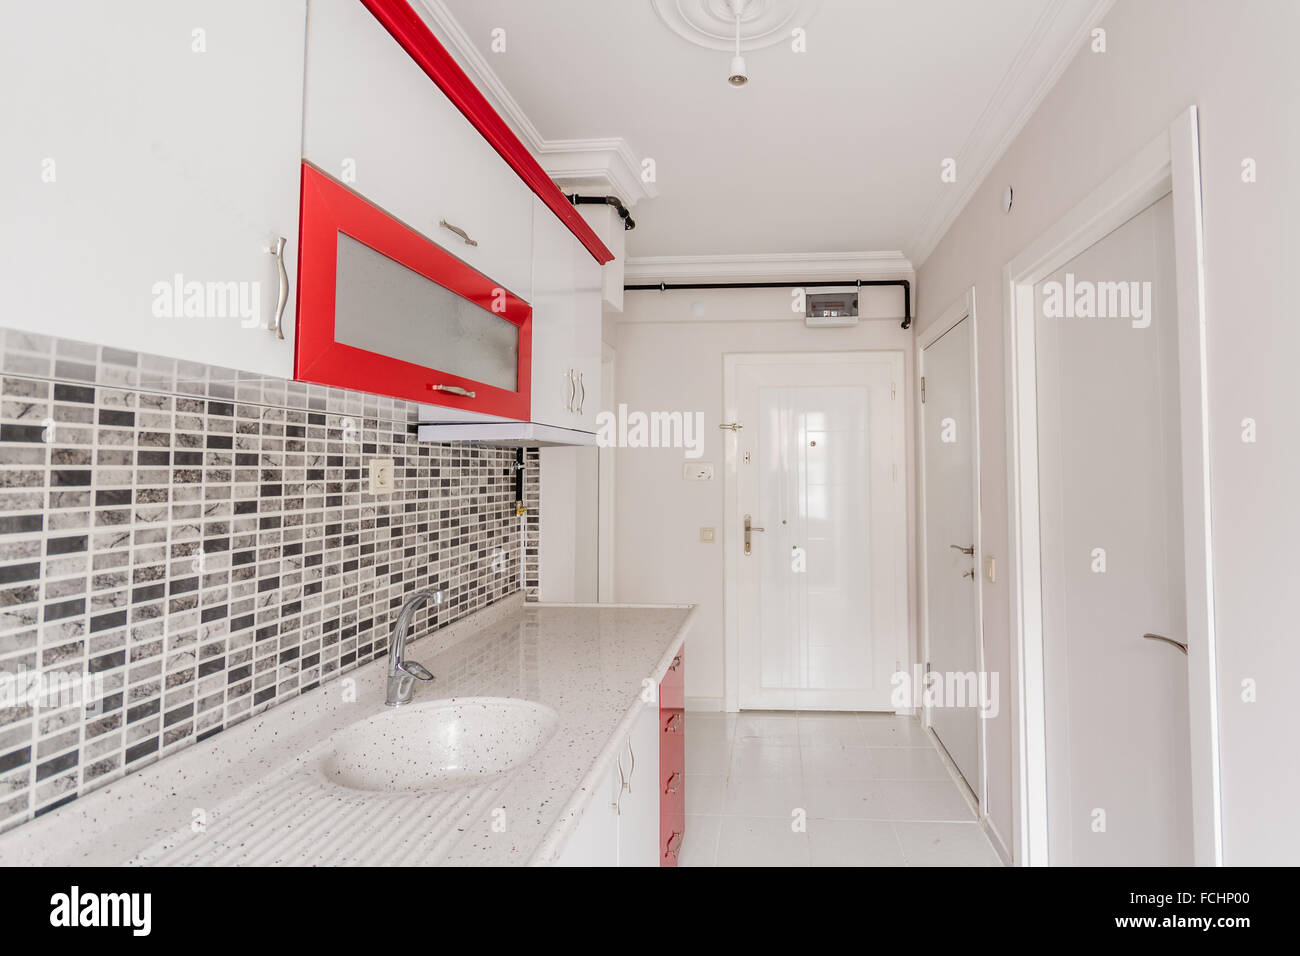 Bright Small Empty Kitchen Of New Apartment With Colours Red And Stock Photo Alamy,Door And Window Design In Sri Lanka